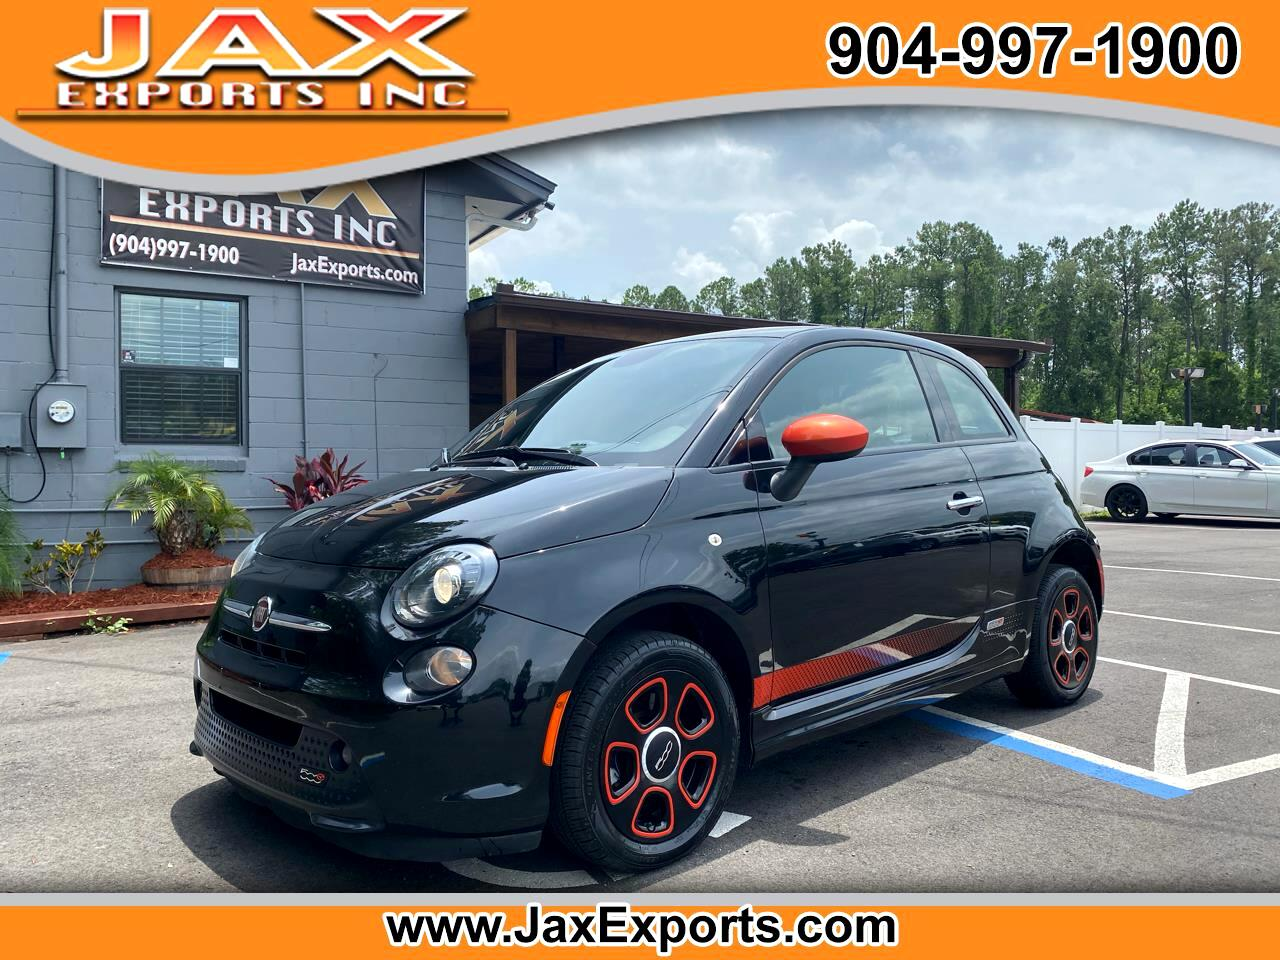 Fiat 500e BATTERY ELECTRIC 2dr HB 2013